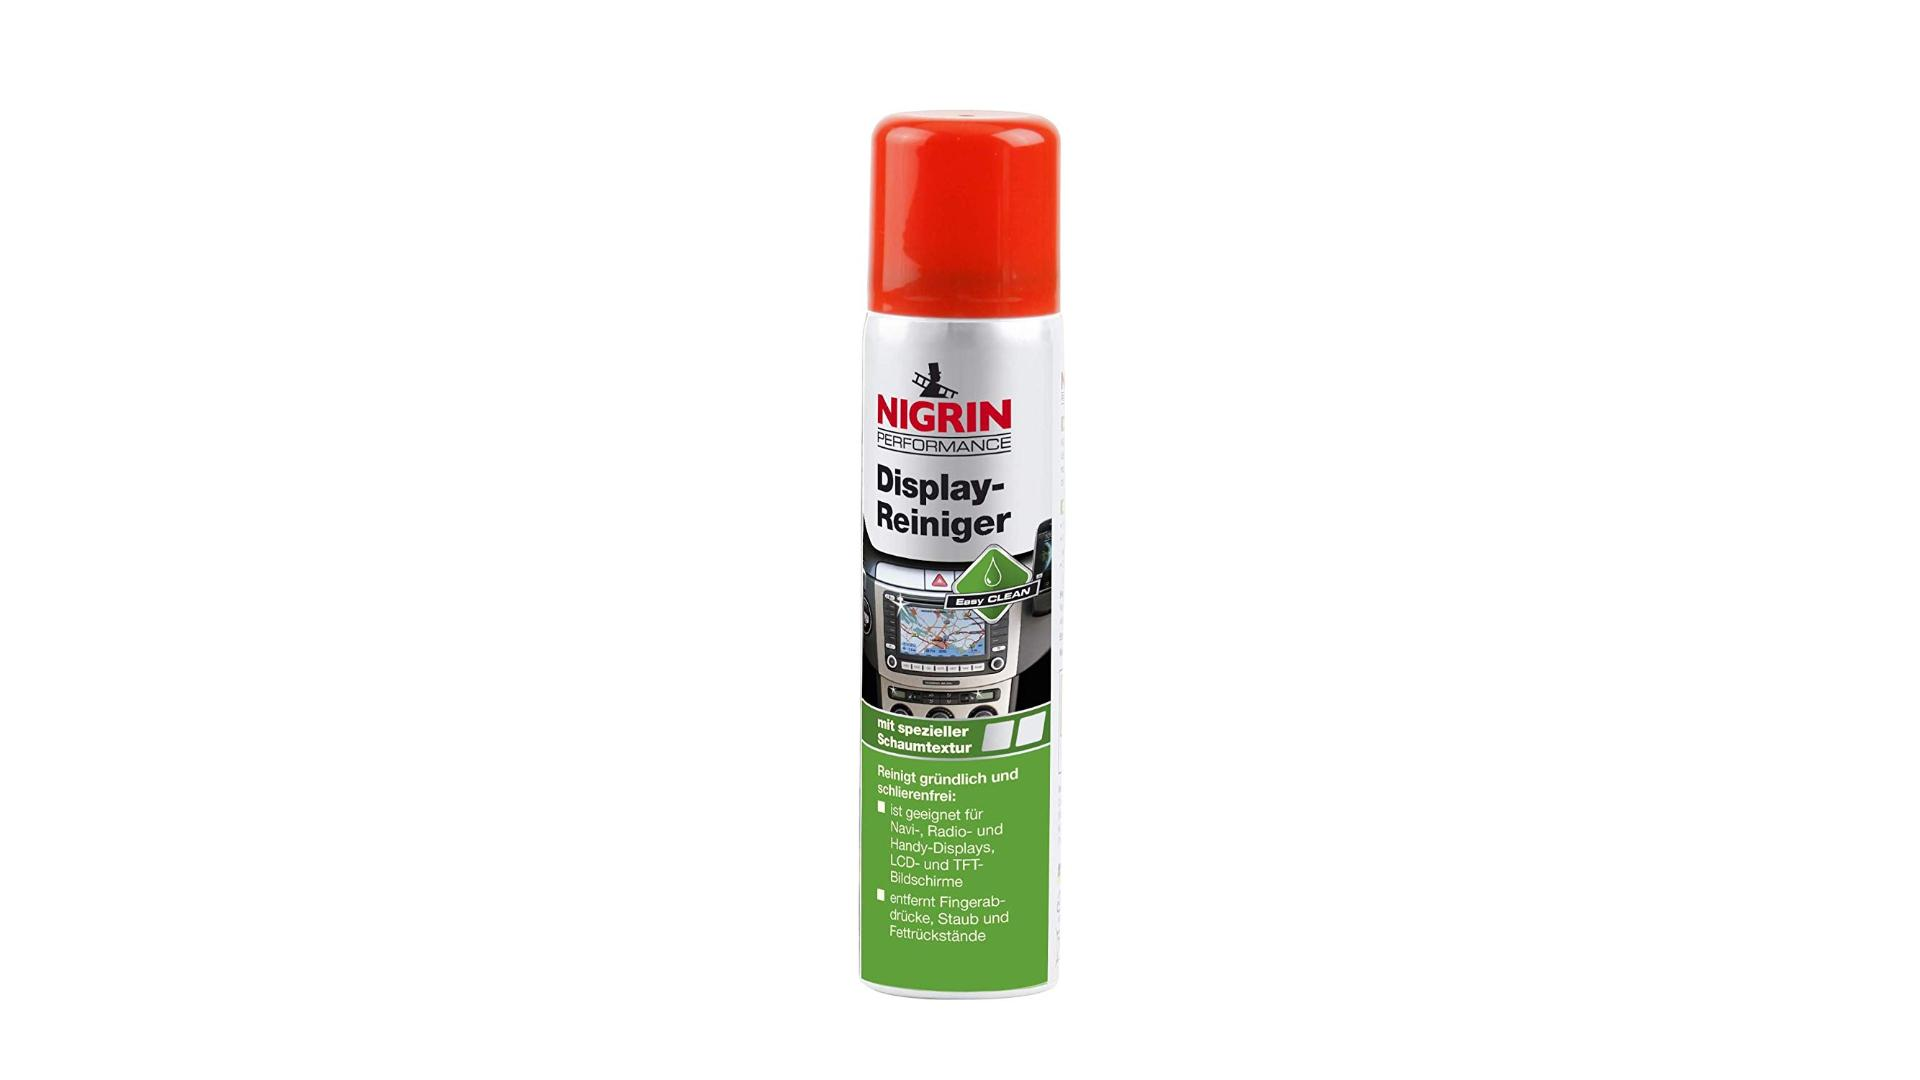 NIGRIN Dashboard Display Cleaner 75ml